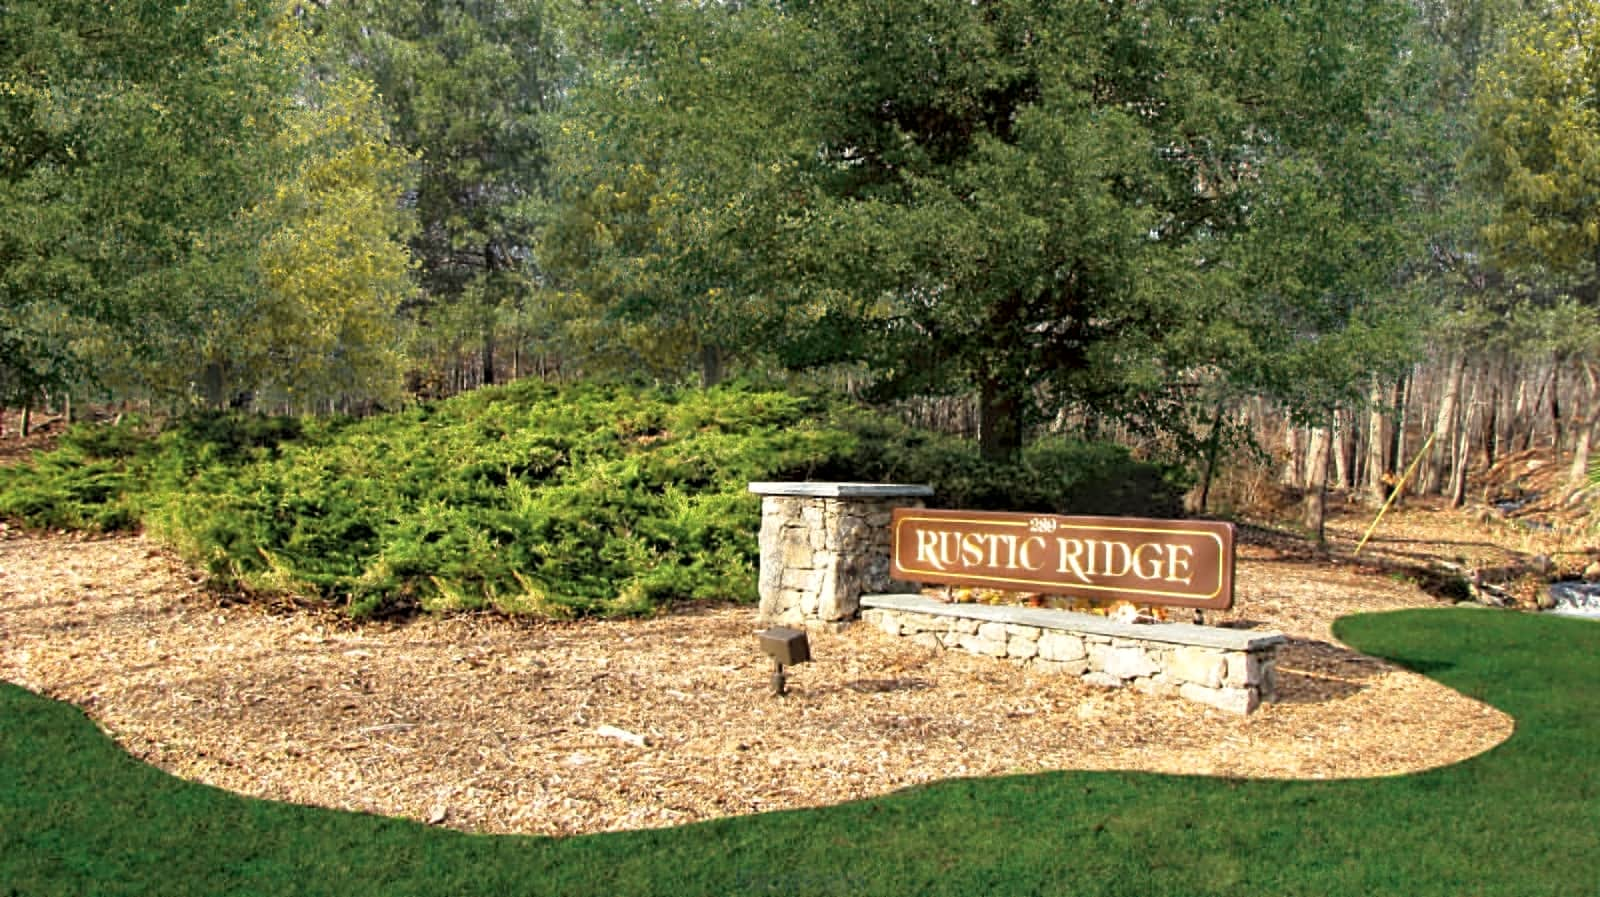 Apartments Near Centenary Rustic Ridge for Centenary College Students in Hackettstown, NJ